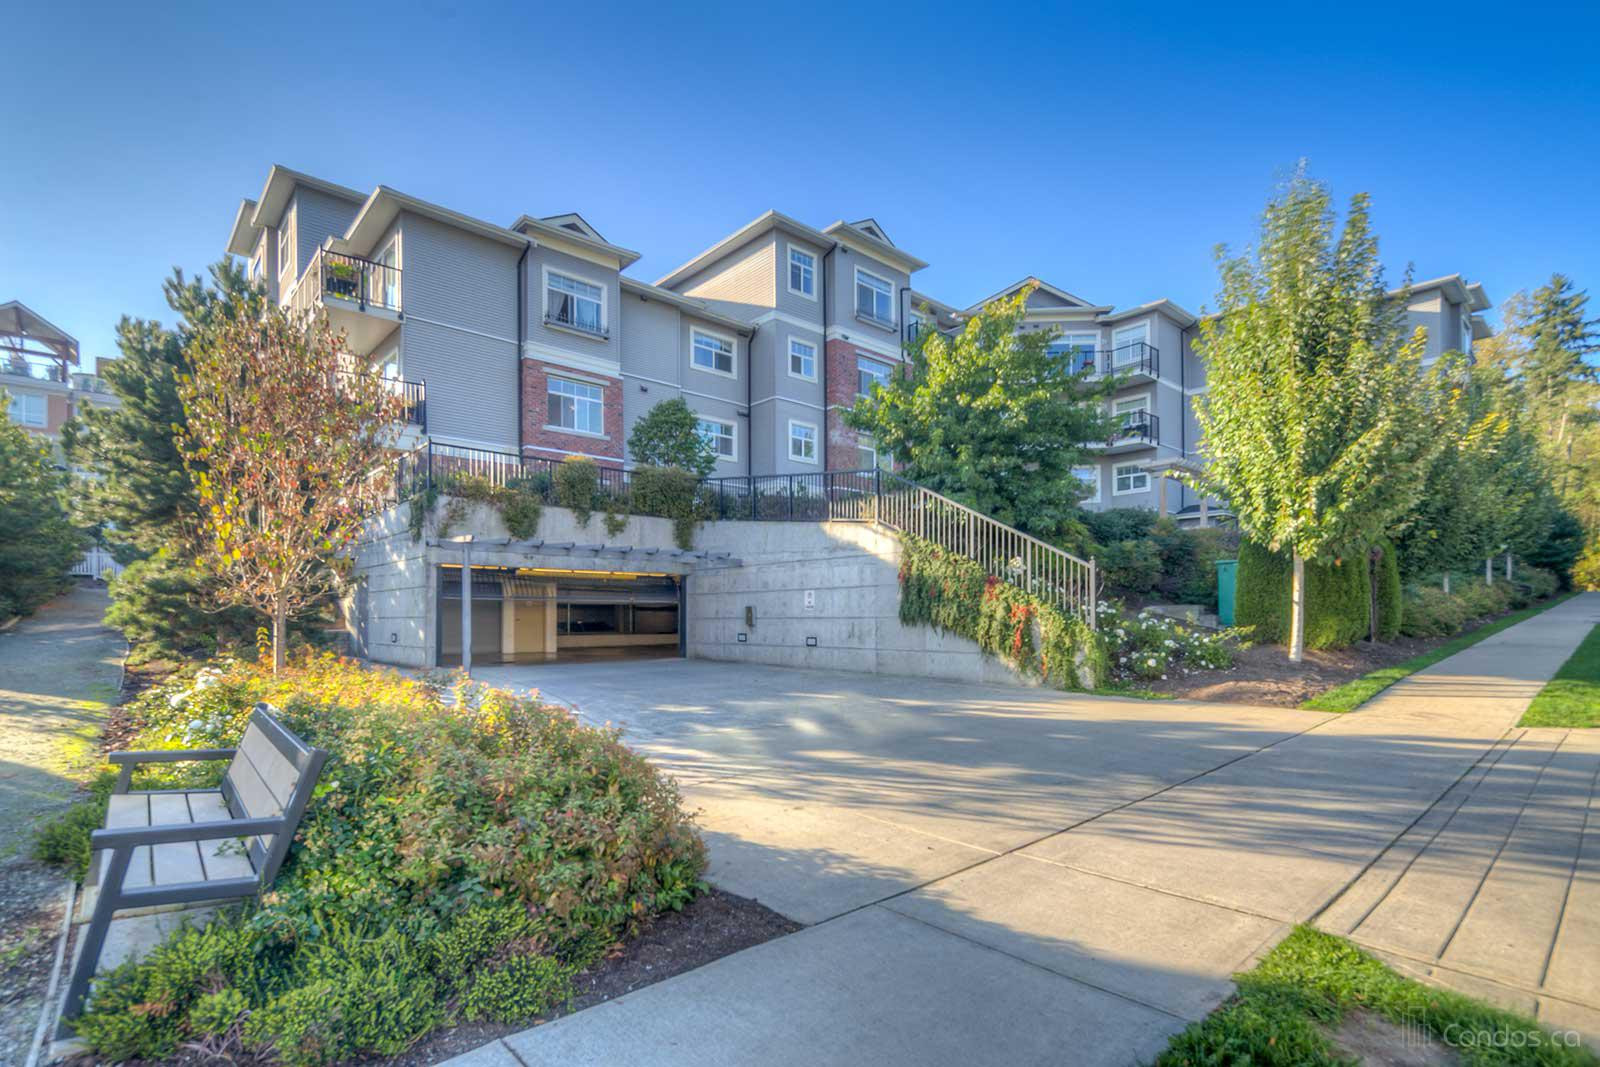 Willow Grand at 19533 64 Ave, Surrey 1